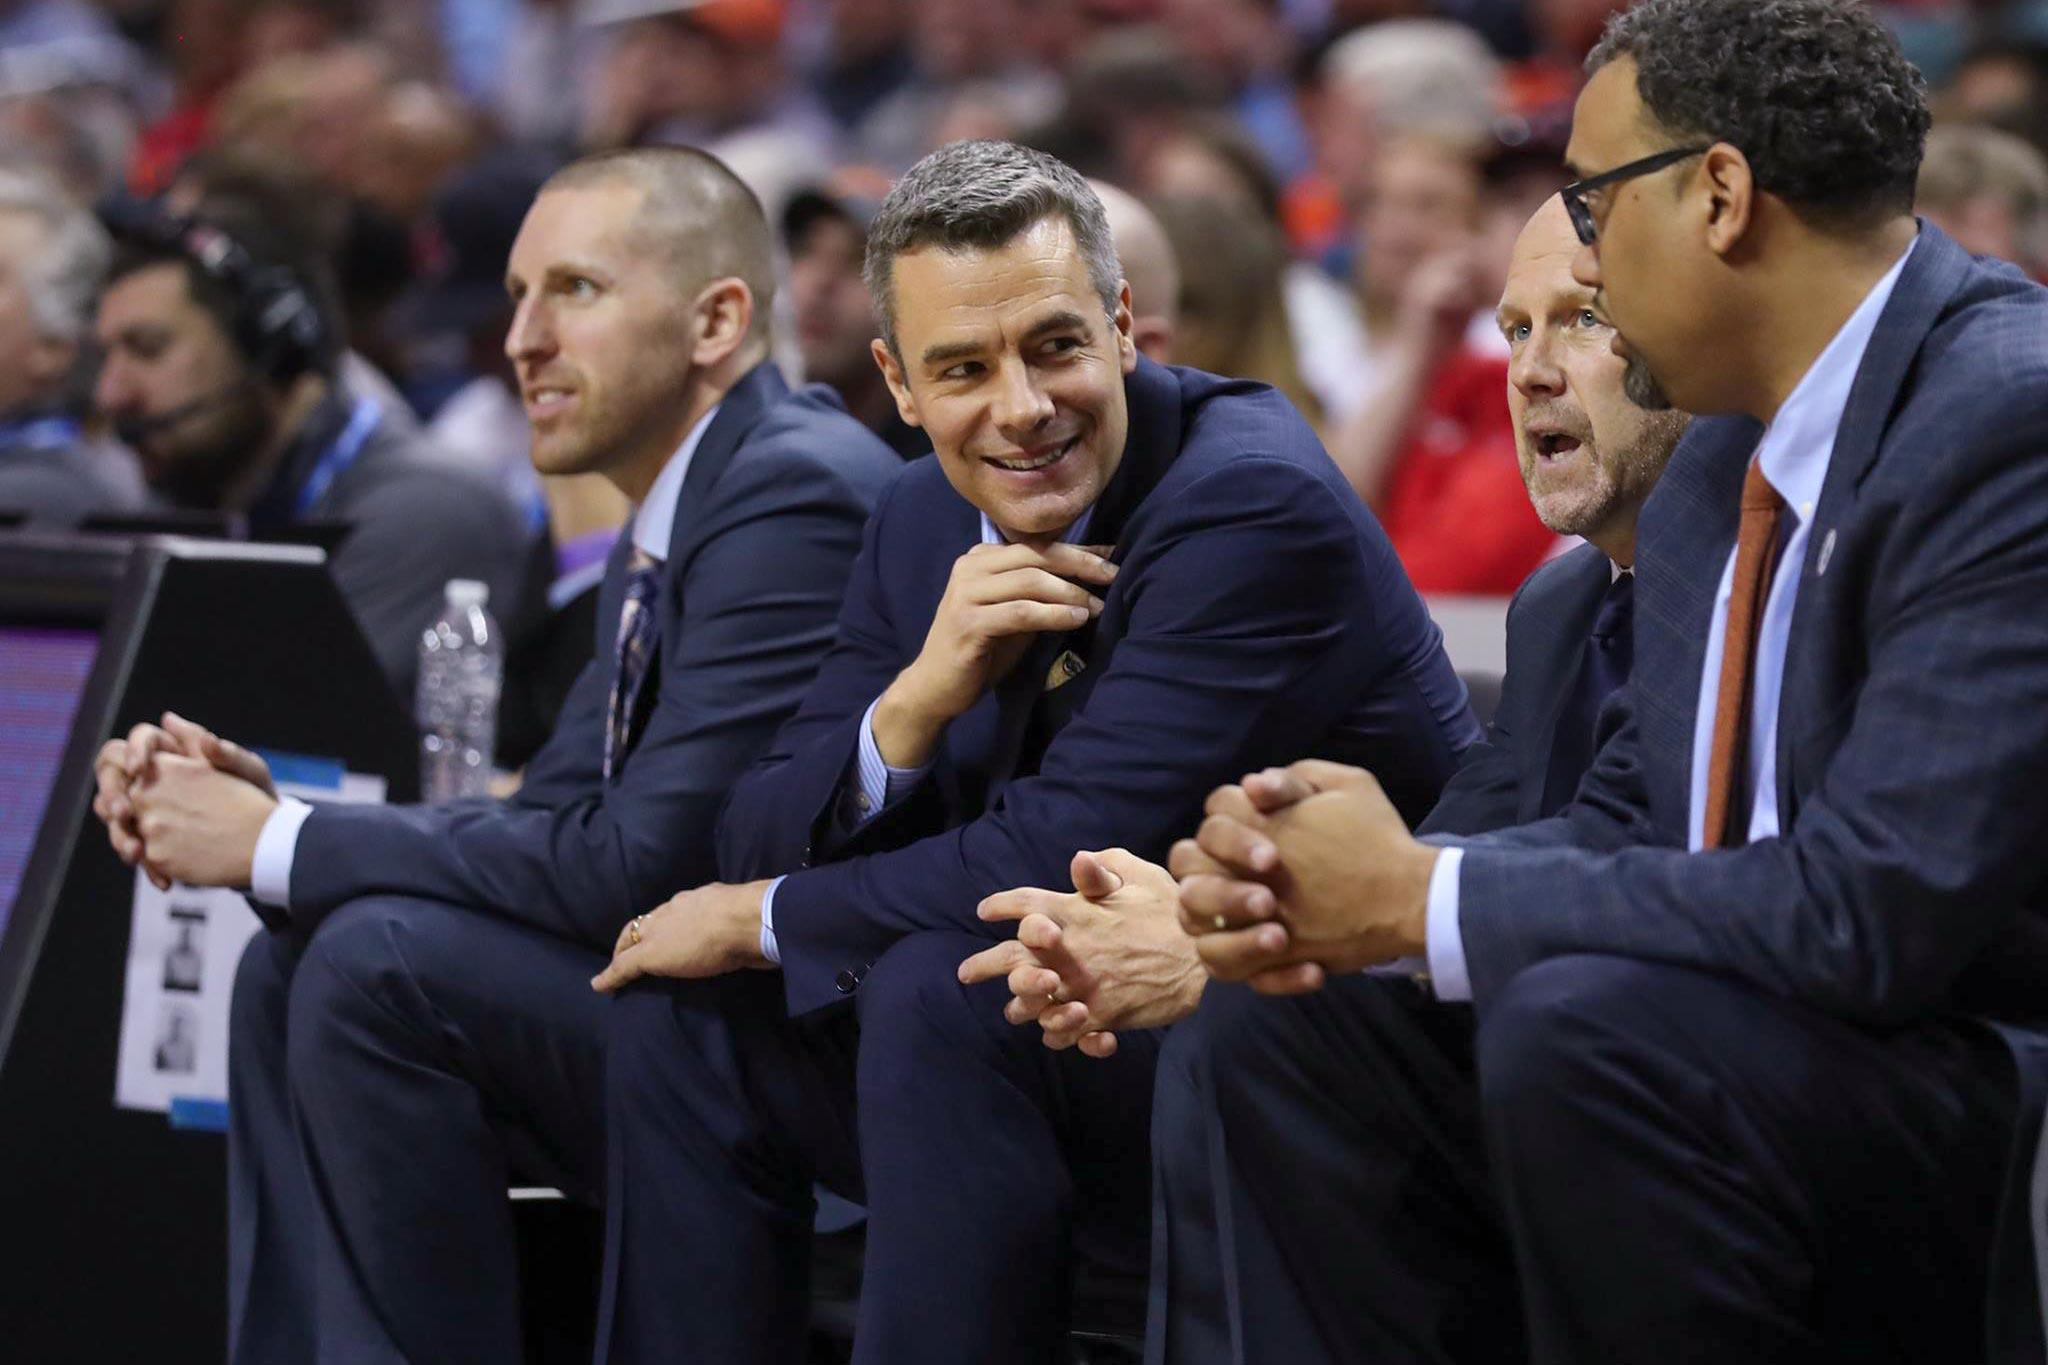 UVA men's basketball coach Tony Bennett is known not just for wins, but for his emphasis on character and leadership development, on and off the court.